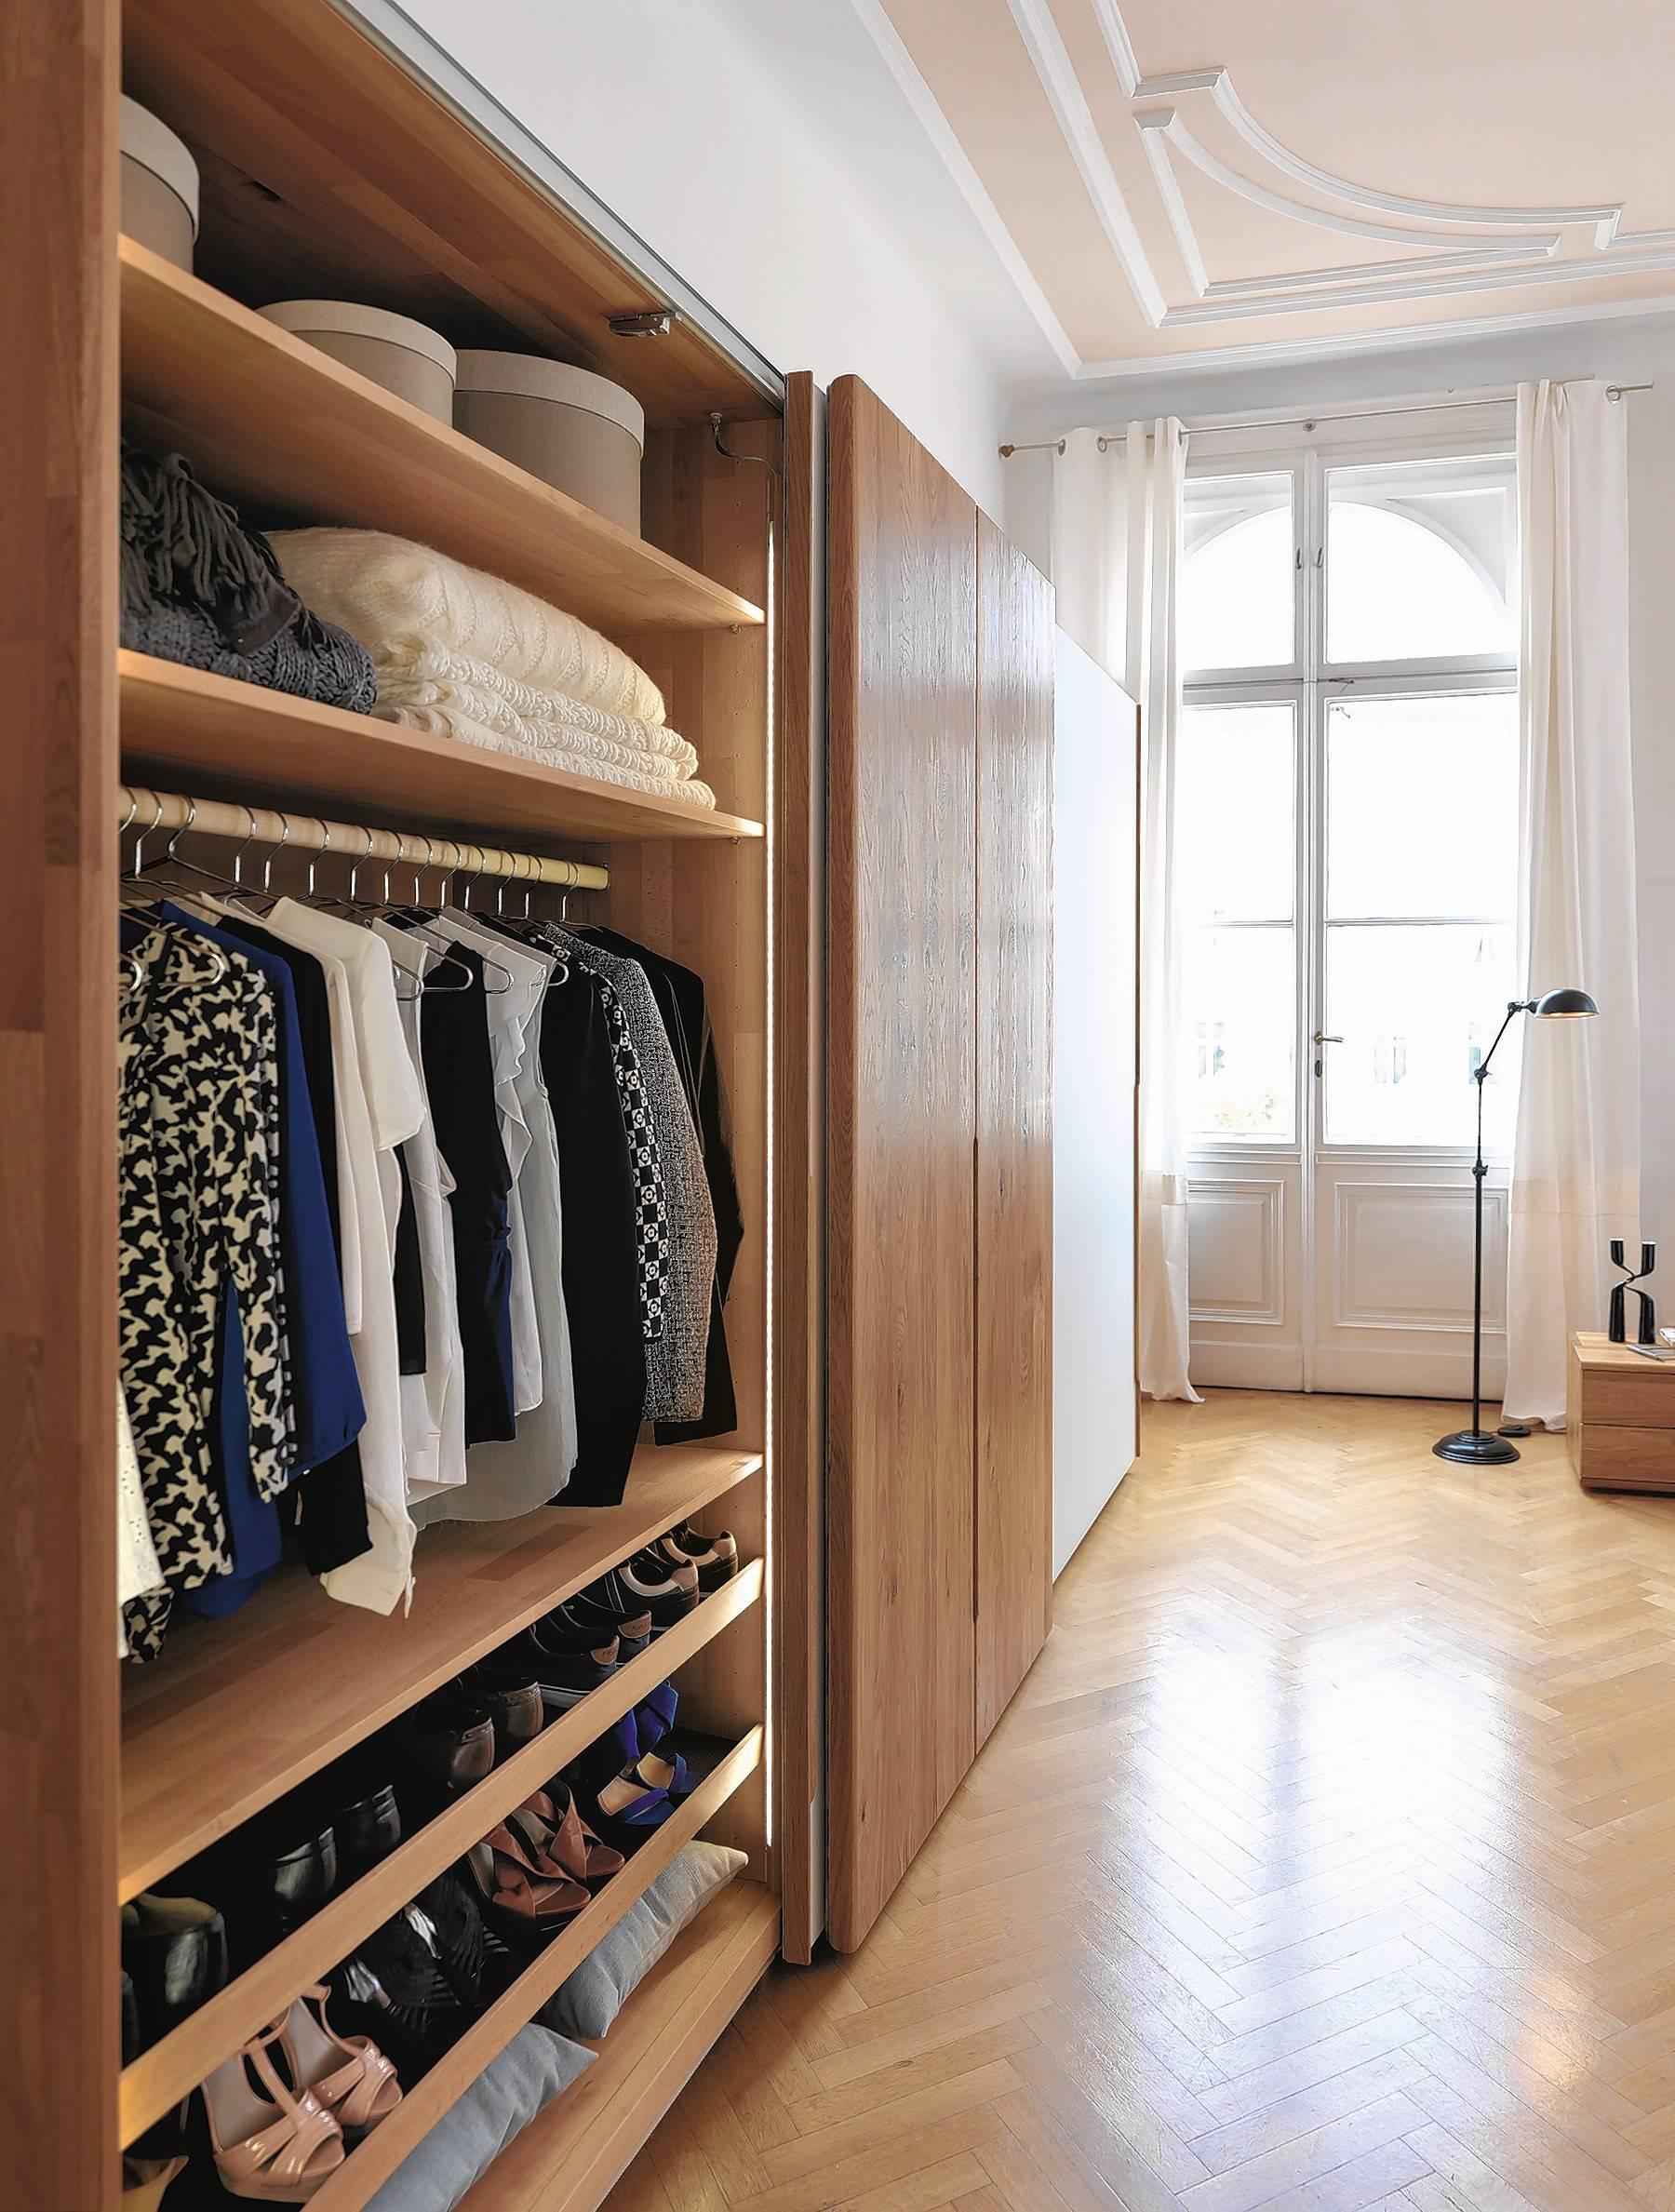 This manufactured wardrobe from Europe can be used as inspiration for your ownboarn door projects.